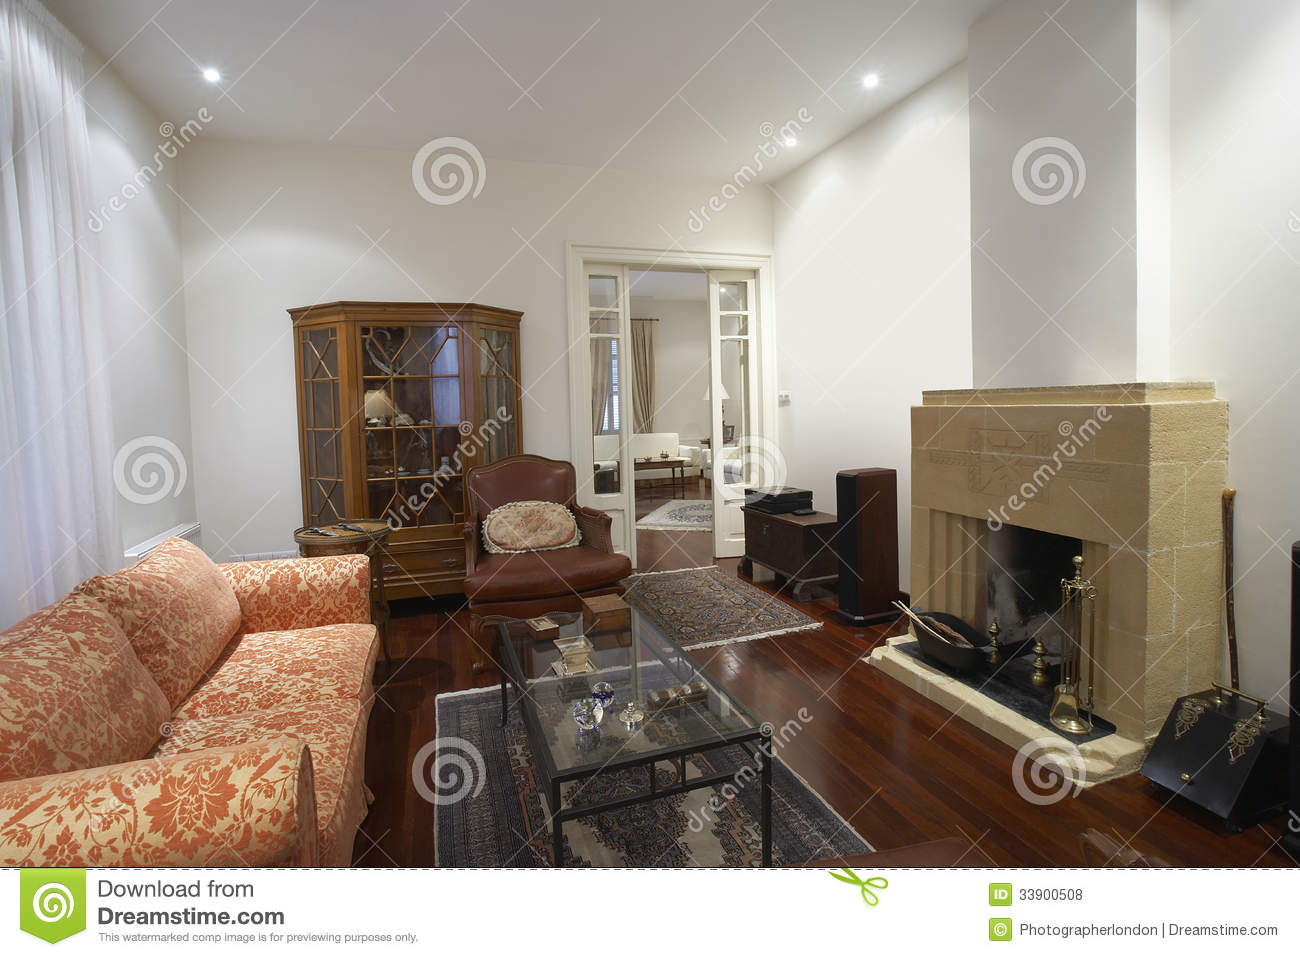 Living Room With Furniture And Fireplace Royalty Free